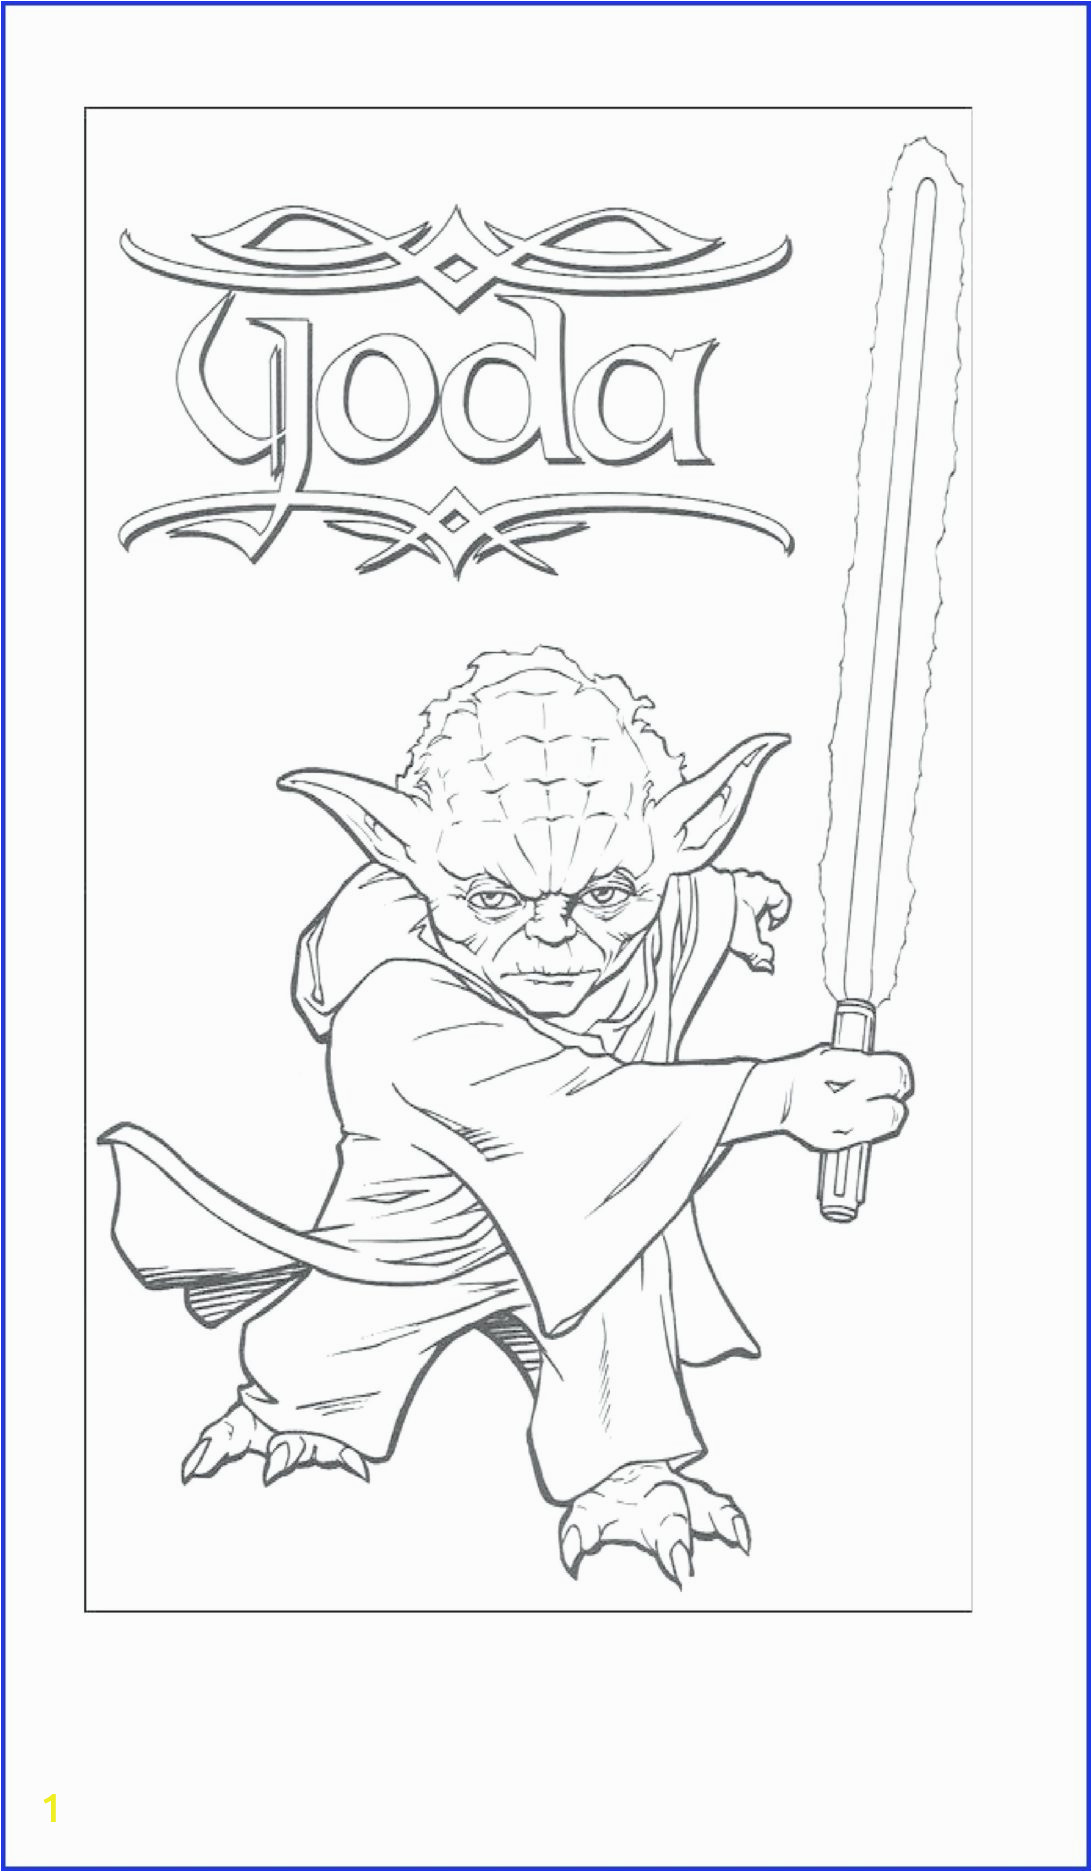 free printable star wars coloring pages sheets photo ideas lego terracesheet co darth vader page the last jedi book pdf ewok characters chewbacca war colouring yoda 1092x1872